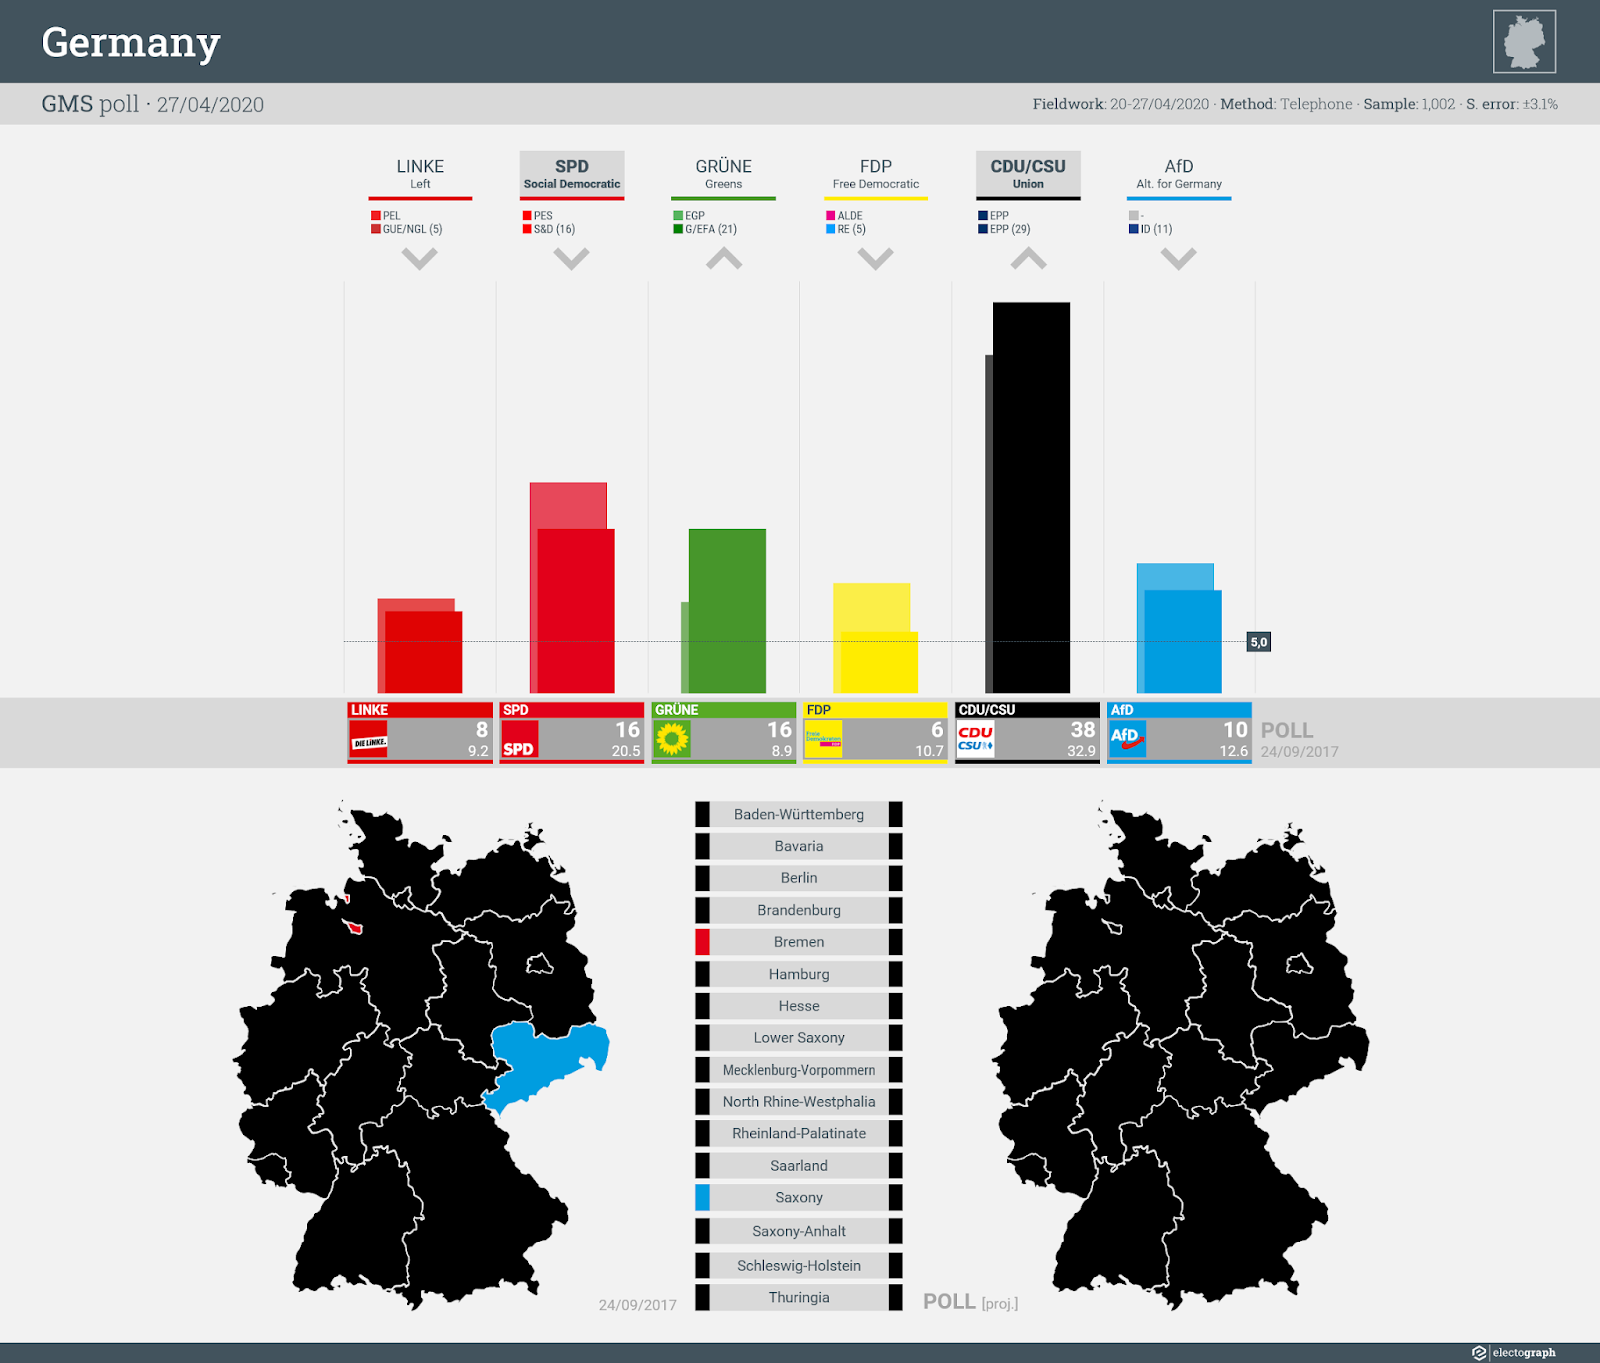 GERMANY: GMS poll chart, 27 April 2020